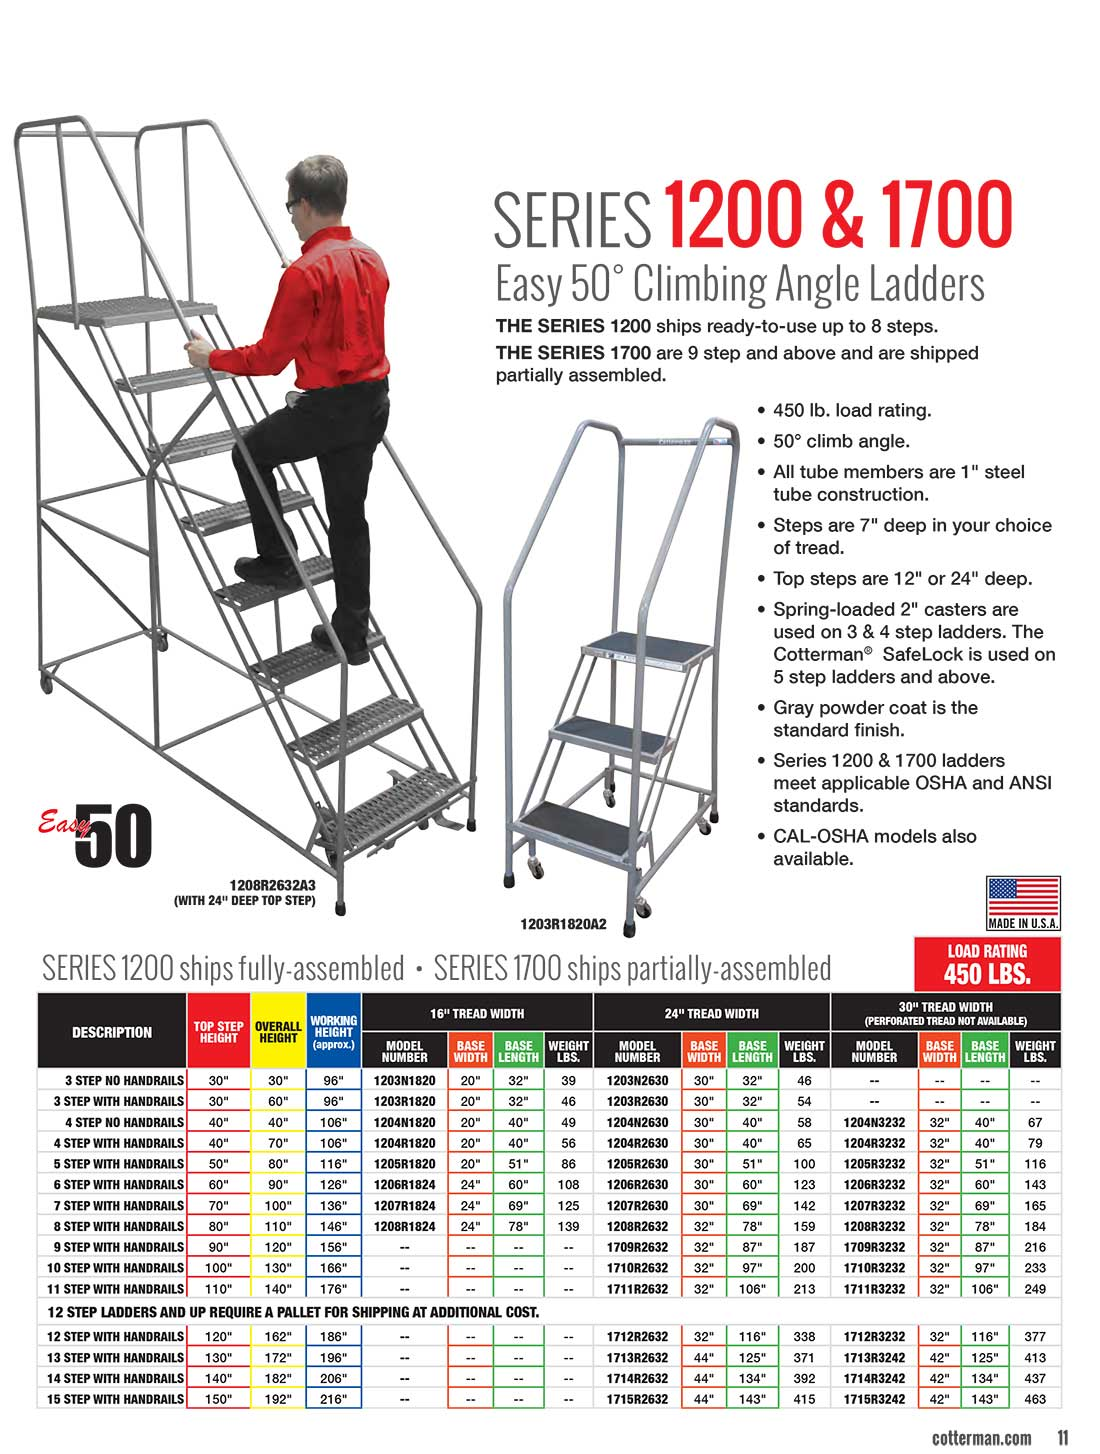 Cotterman Series 1700 Rolling Ladder Technical Specs